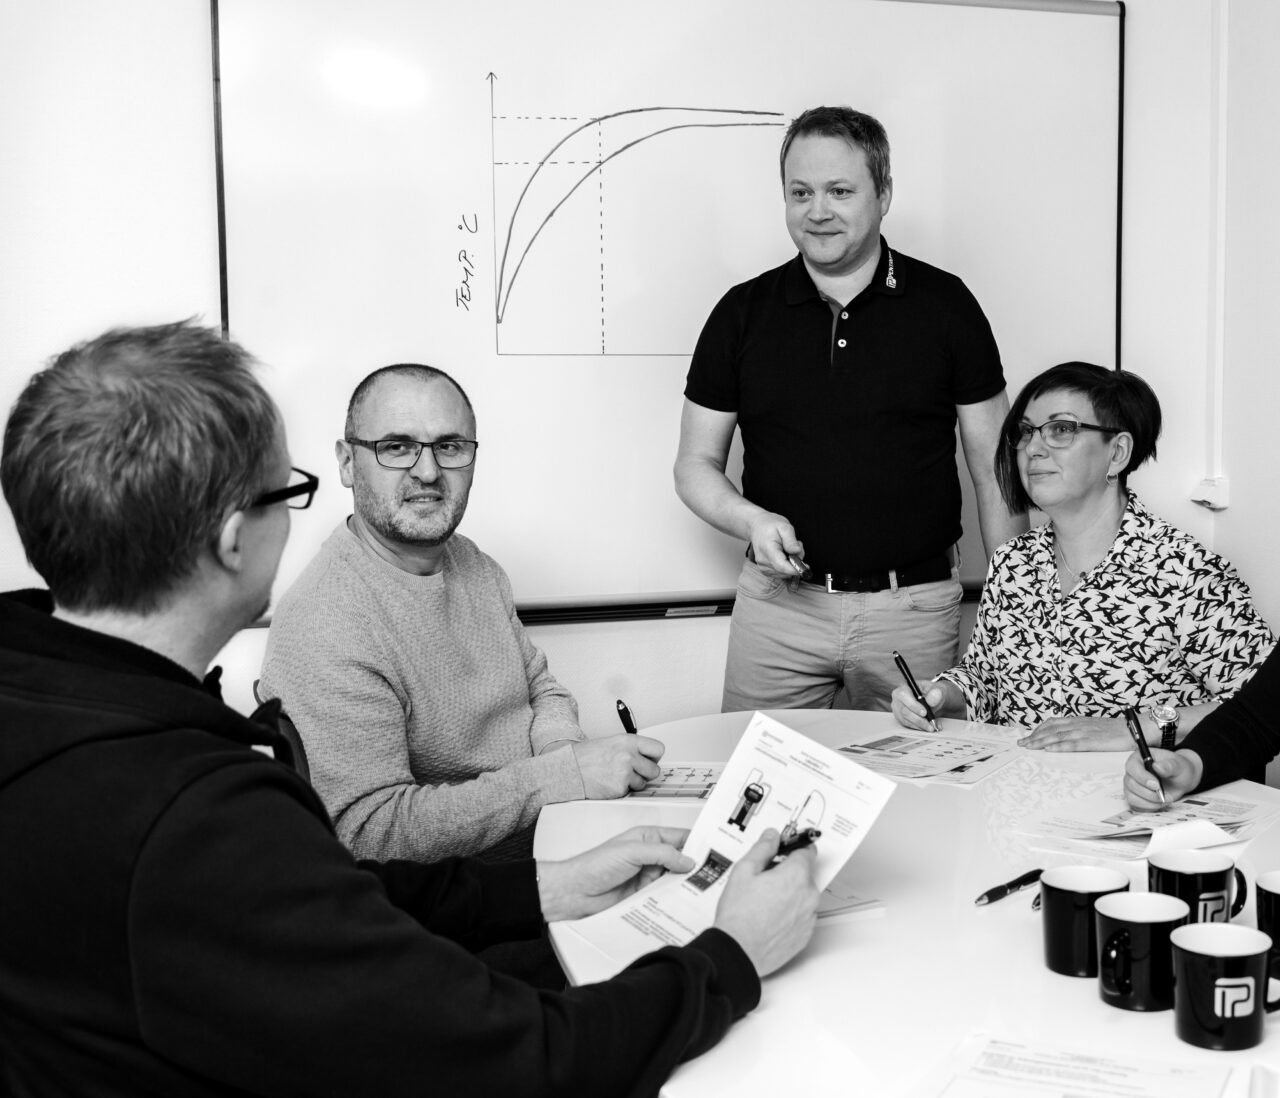 Training courses were launched in 1991. A number of companies use Pentronic's courses in temperature measurement and calibration as an introduction for their own new employees whose work involves these duties.